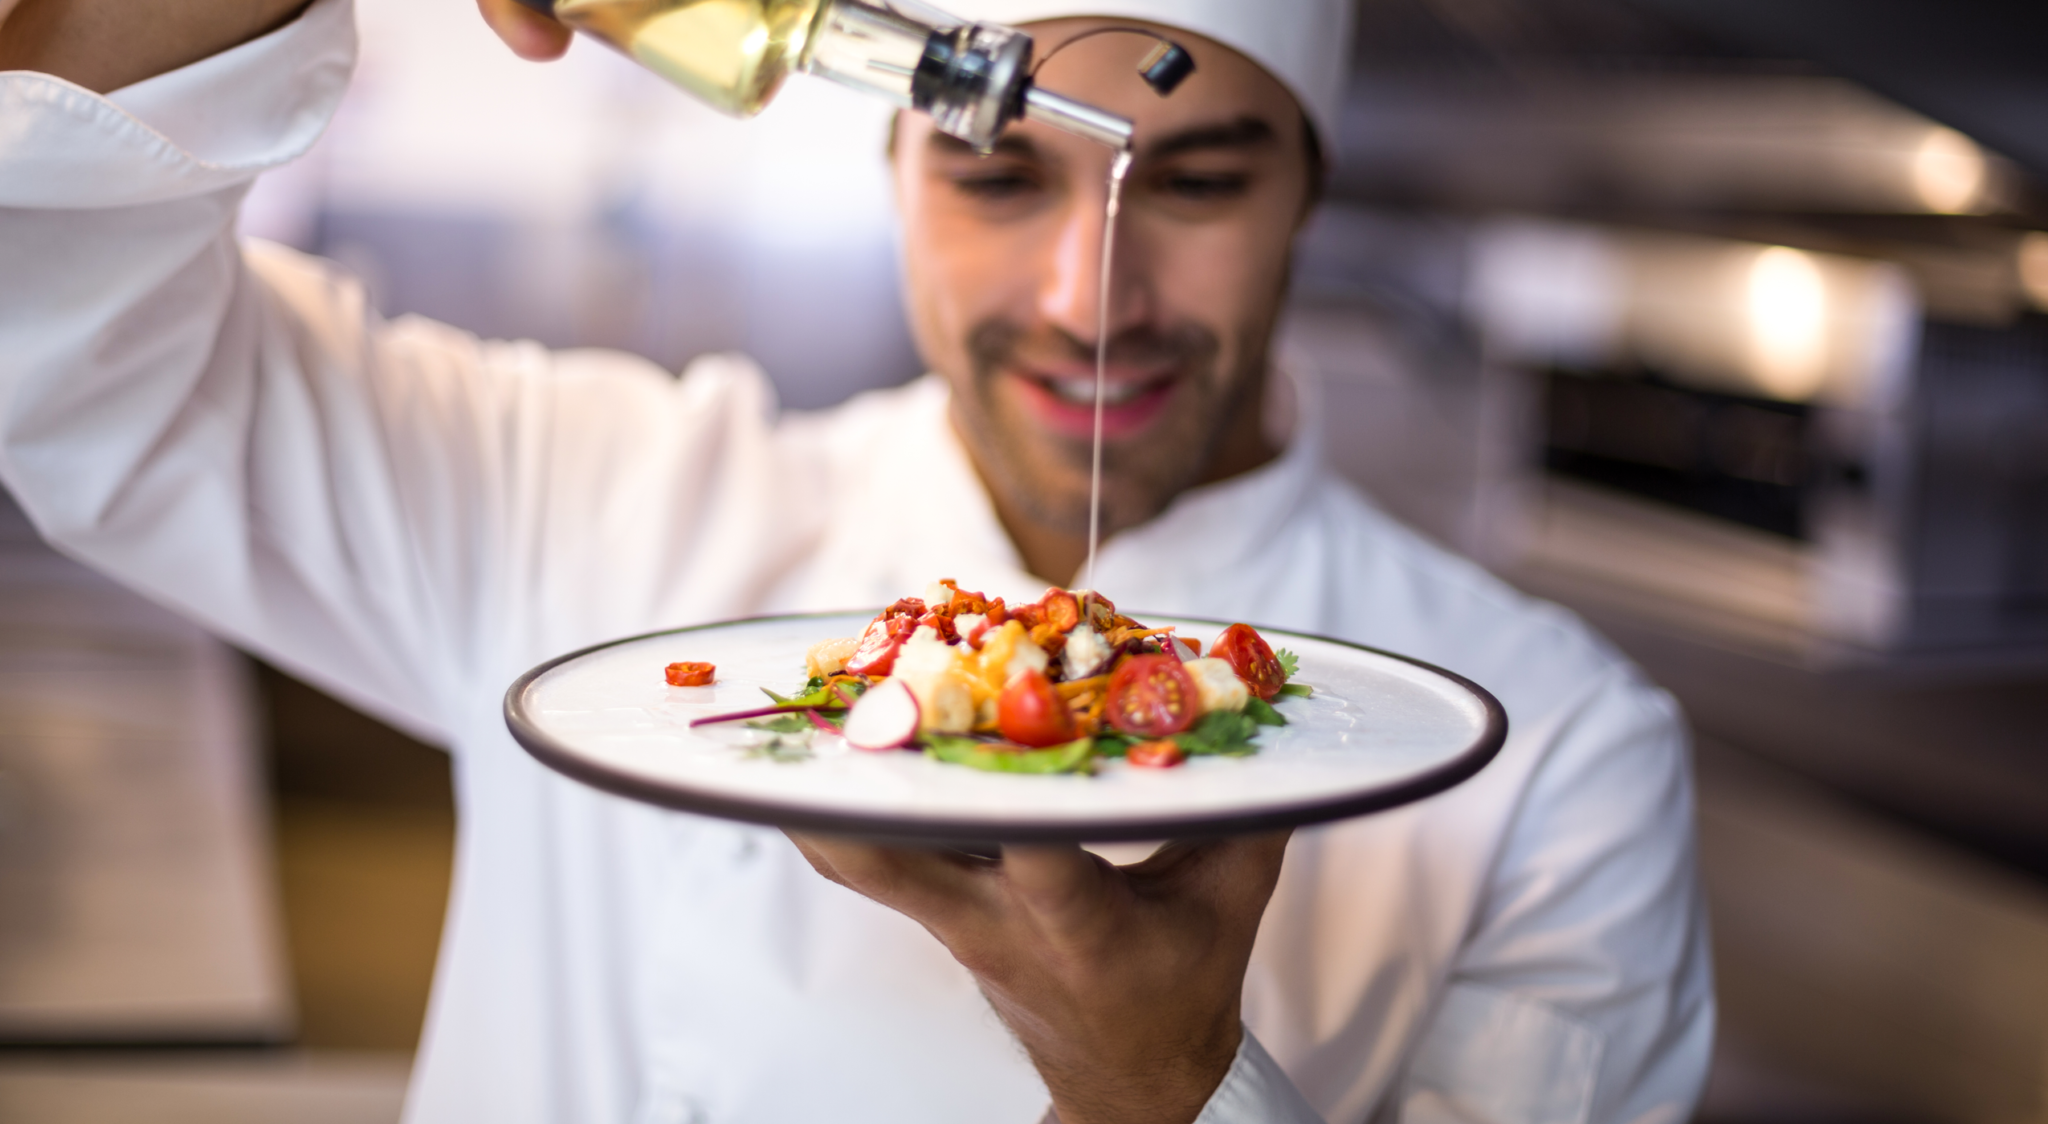 Resources for chefs & cooking educators top section image